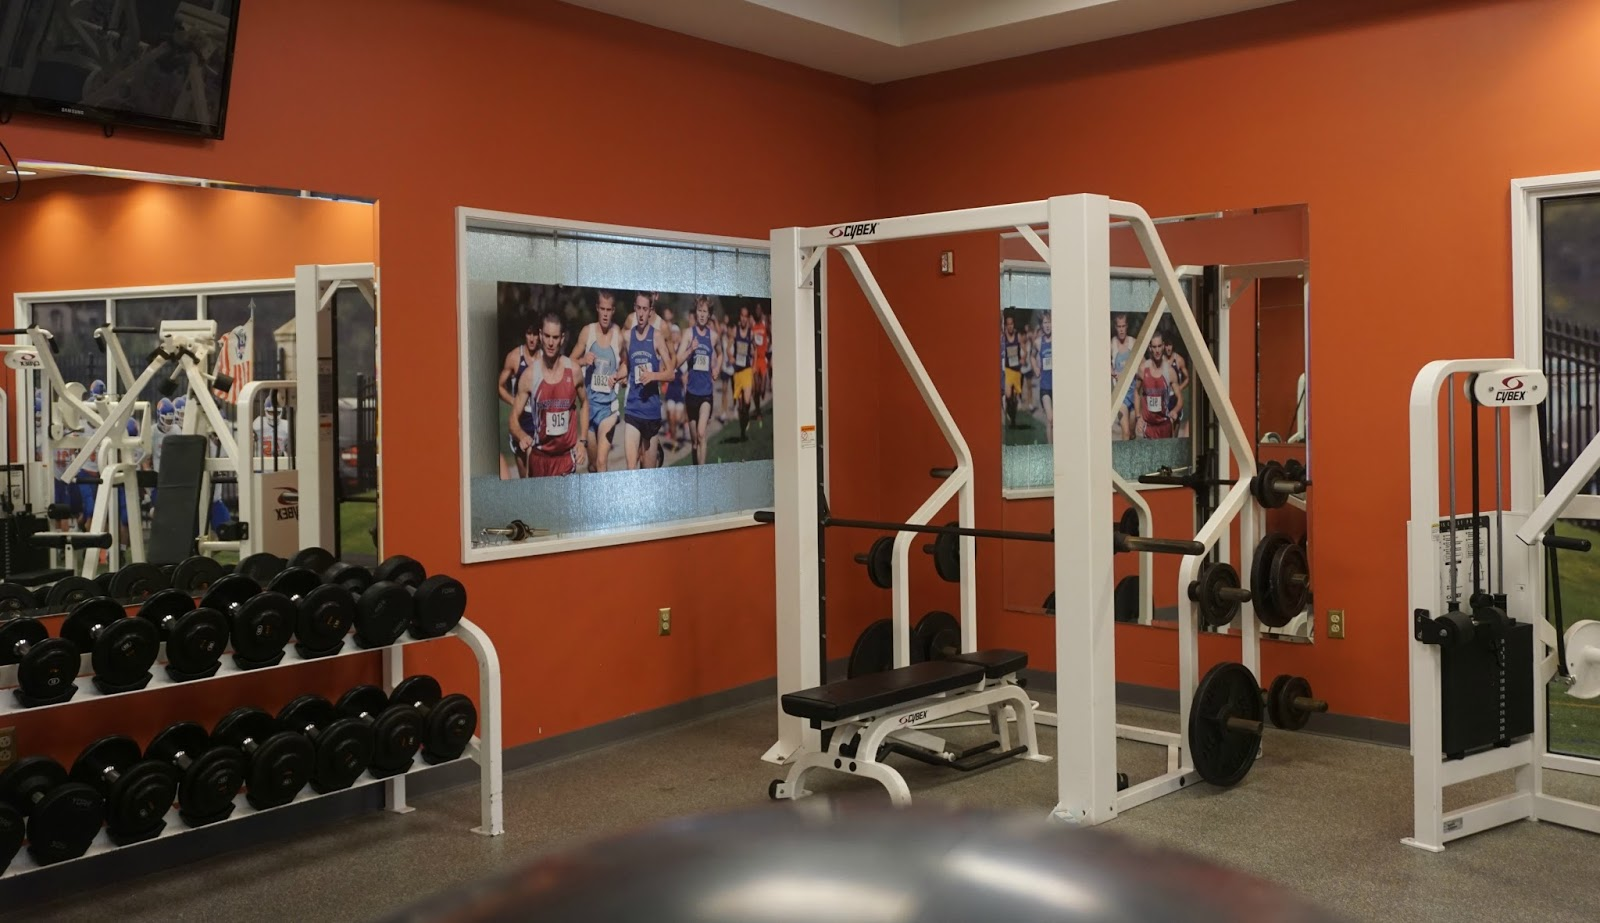 Home place august 2016 the exercise room at the red door spa in the mystic marriott vtopaller Images